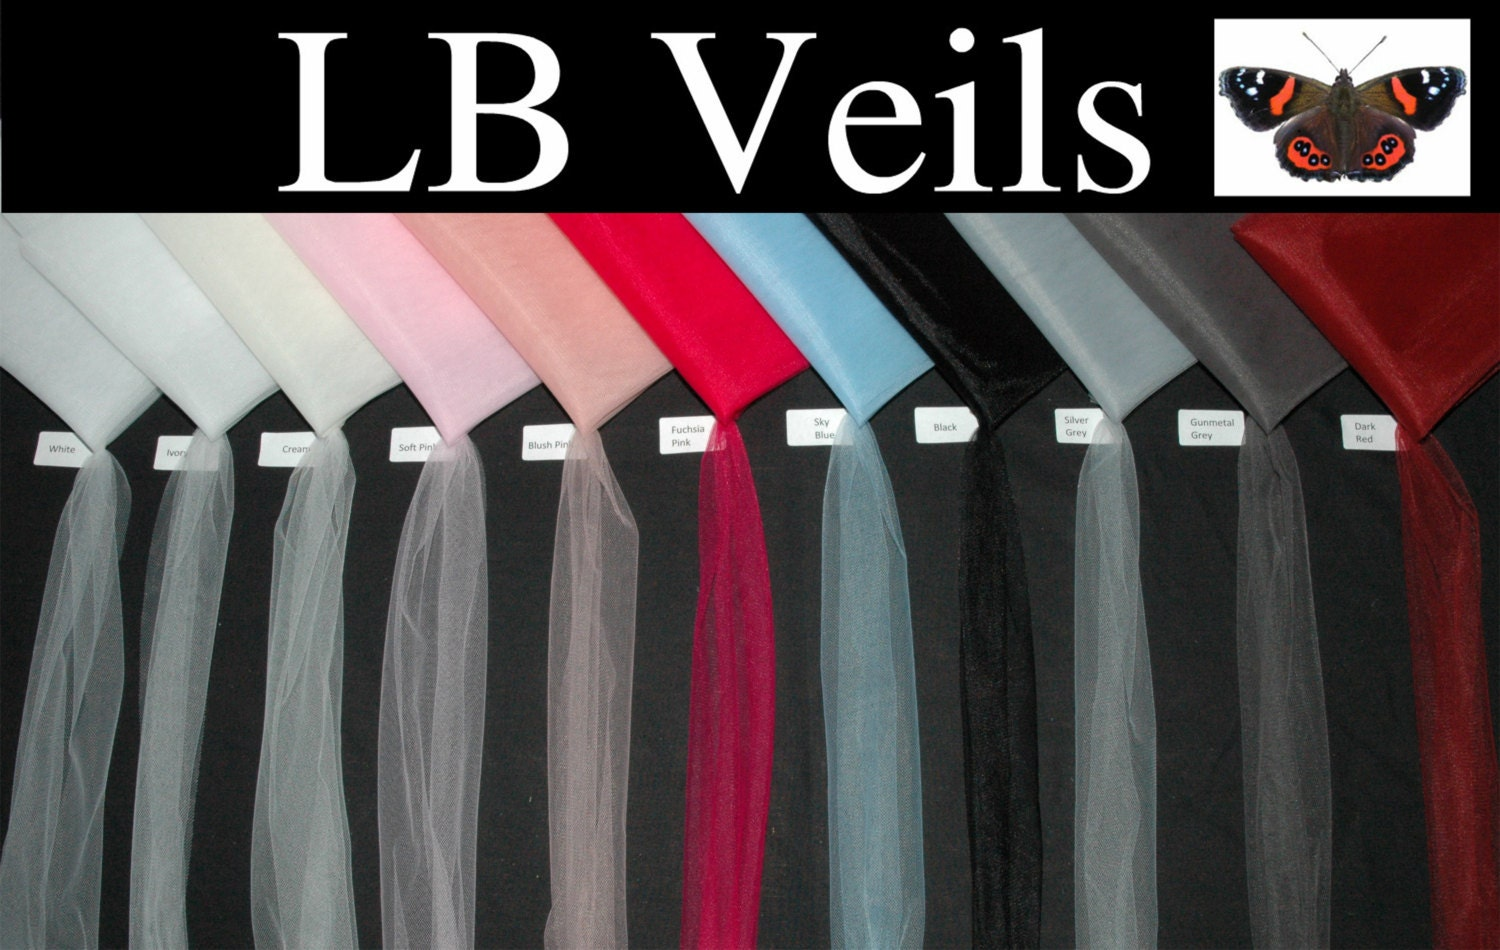 Designer Blush Pink Wedding Veil Crystal Diamante All Over Any Length Single Tier Colour LB Veils 158 UK